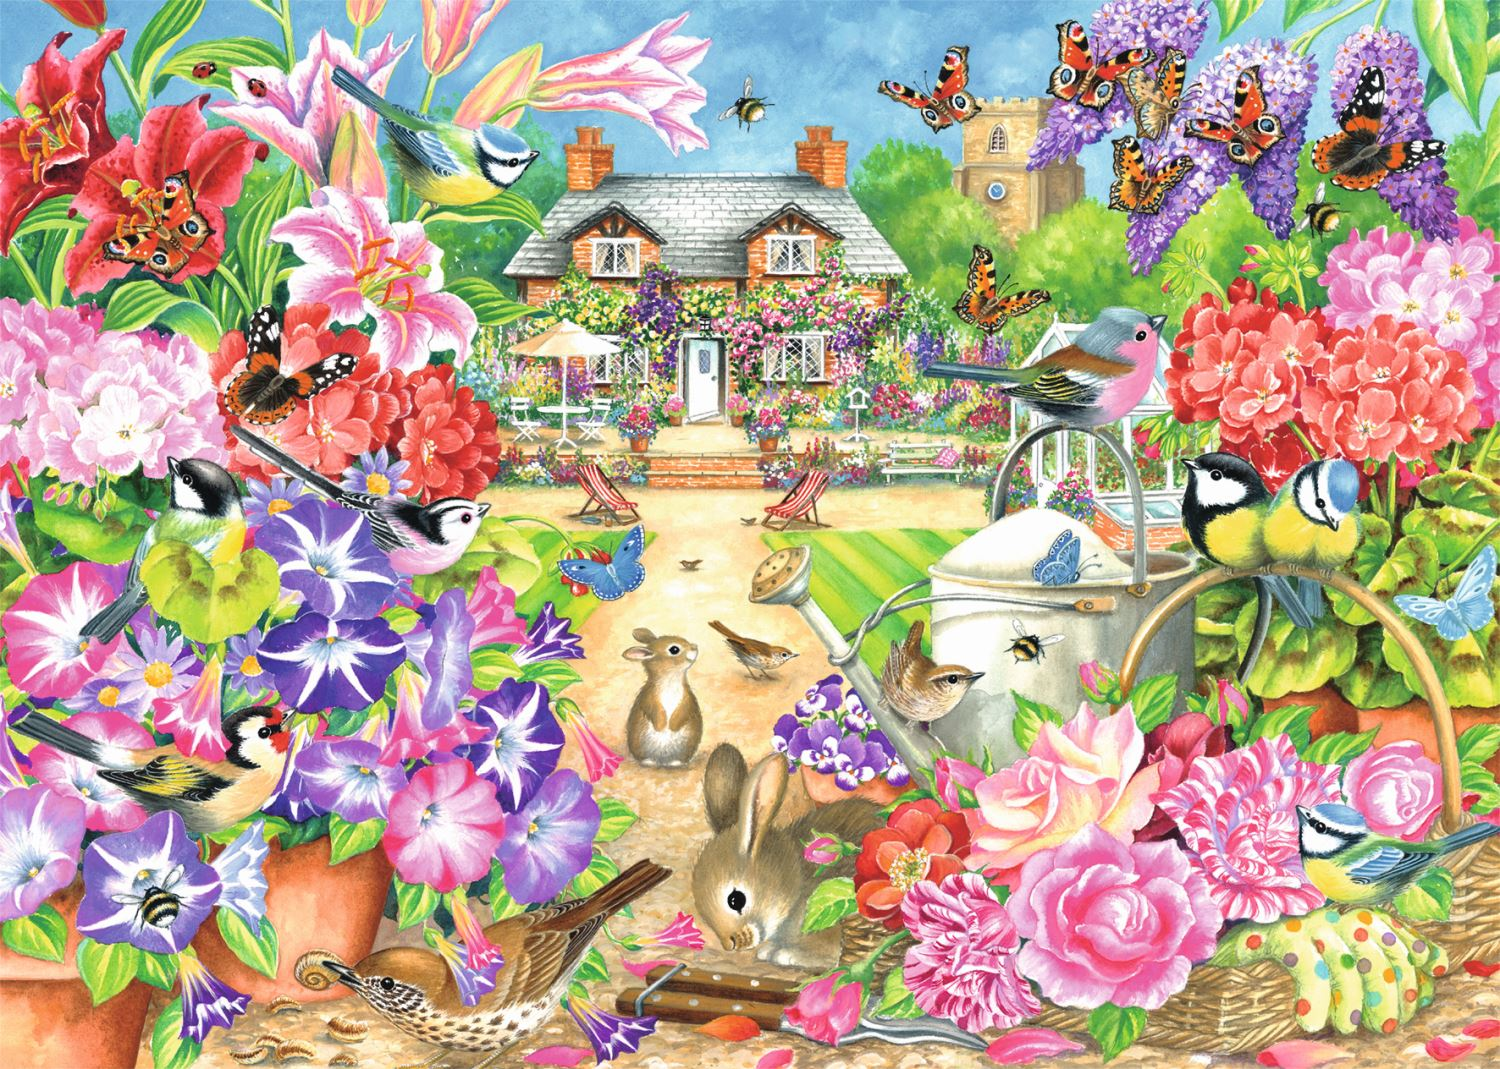 Jumbo-Games-Premium-Child-Adult-Jigsaw-Puzzles-Various-Designs-And-Pieces thumbnail 43